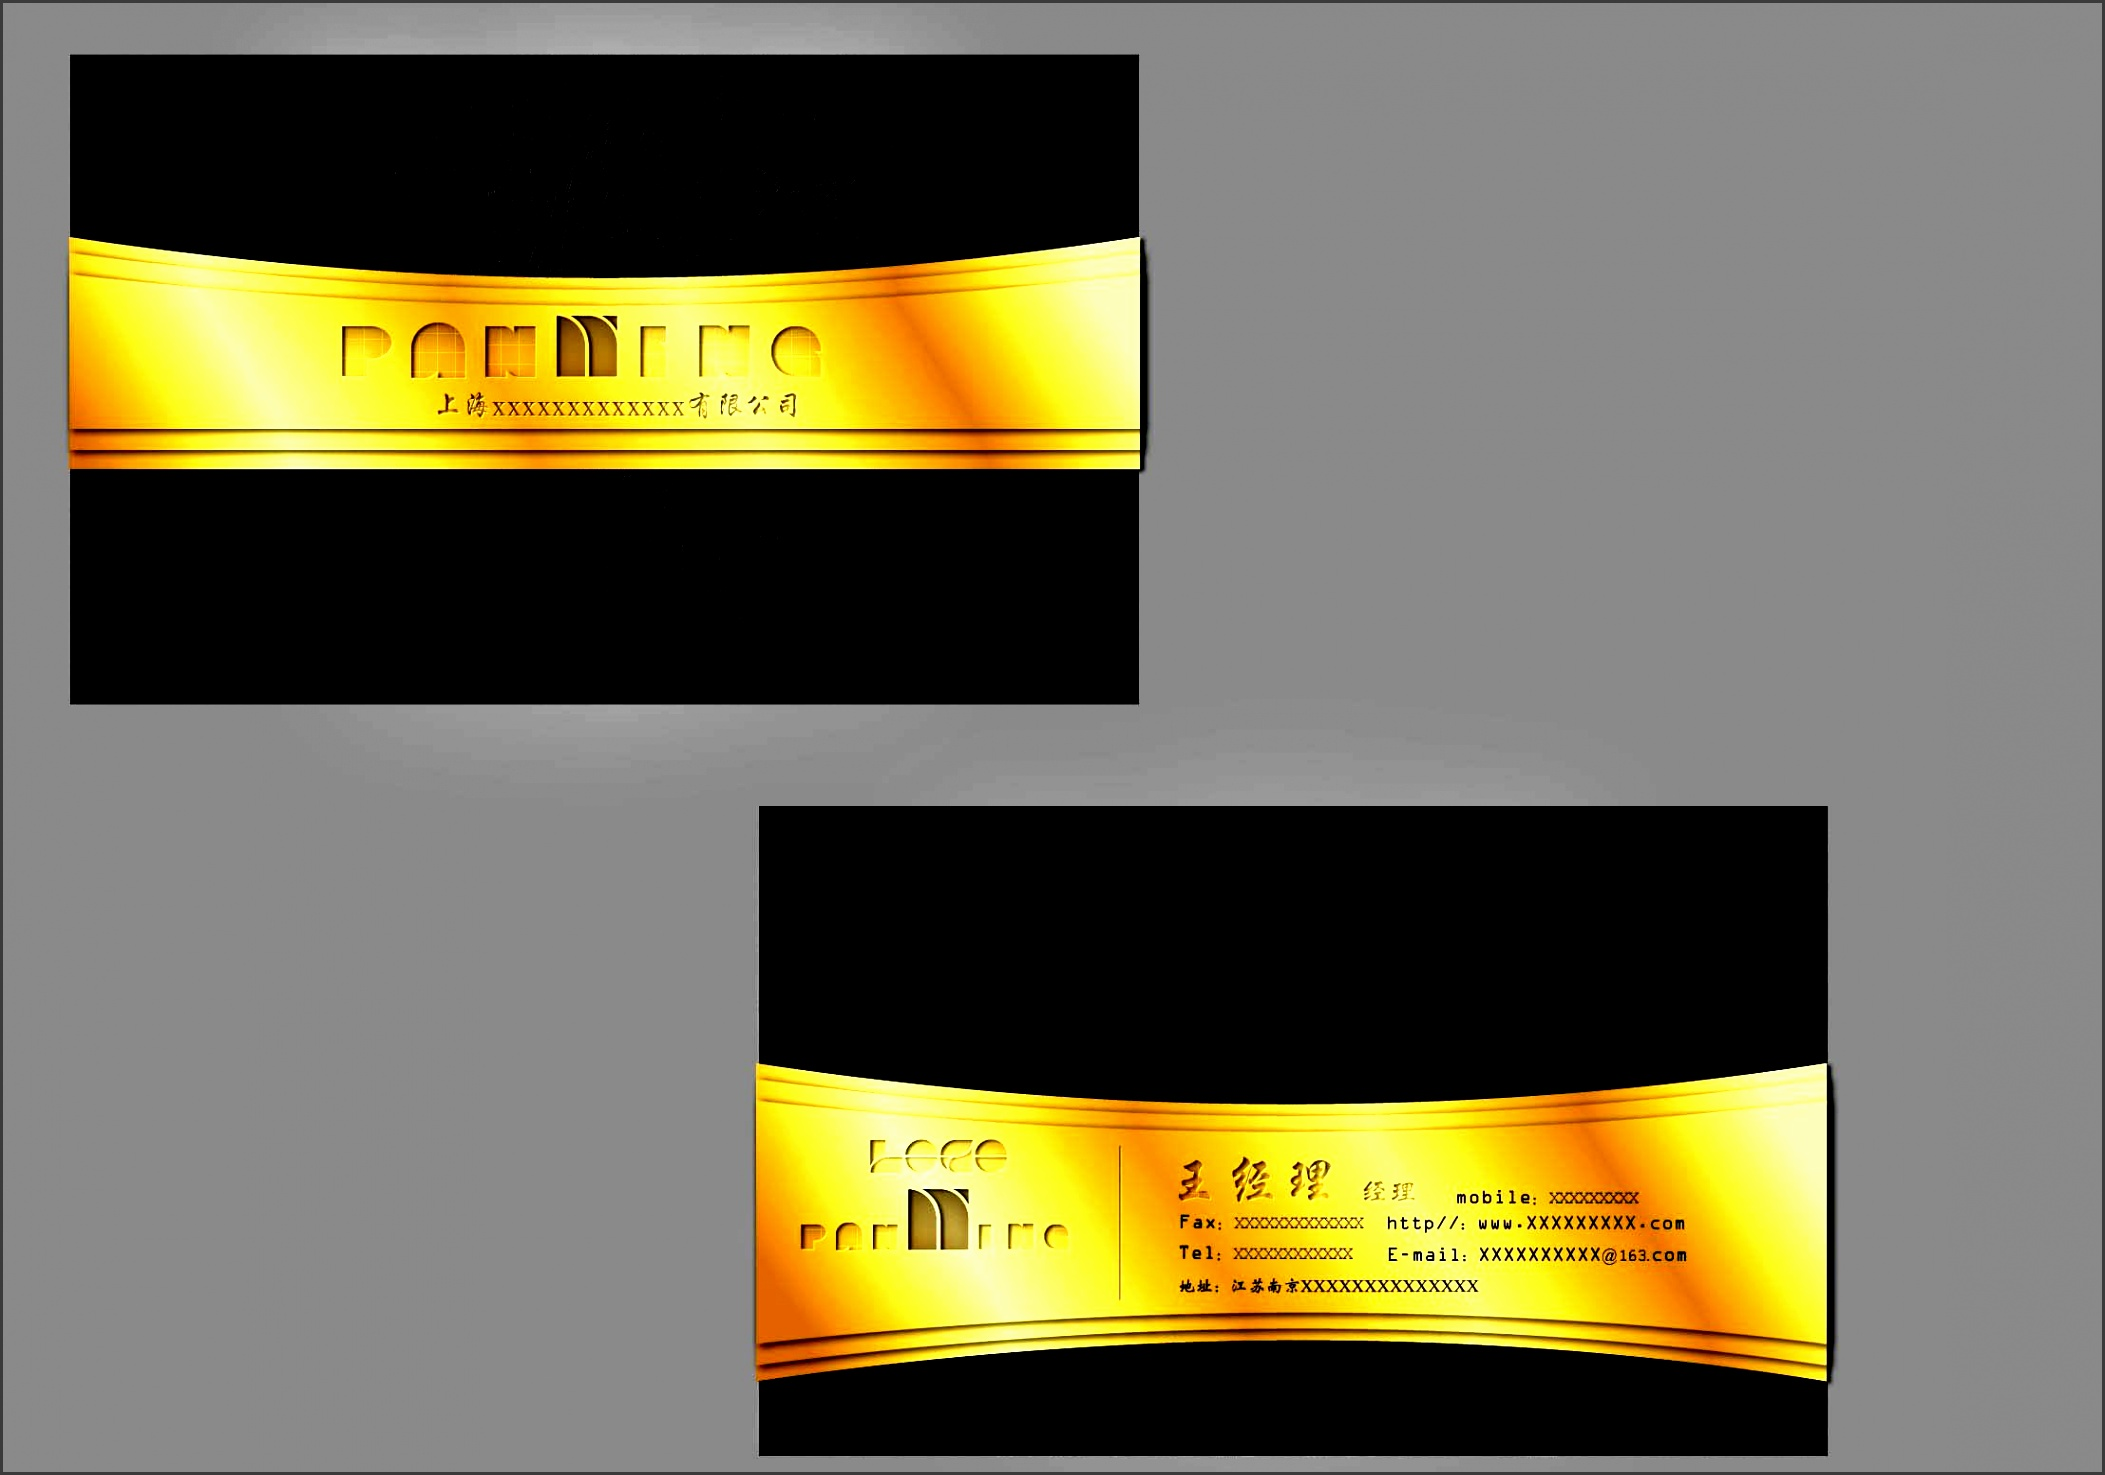 business card template photoshop cs6 28 images design a